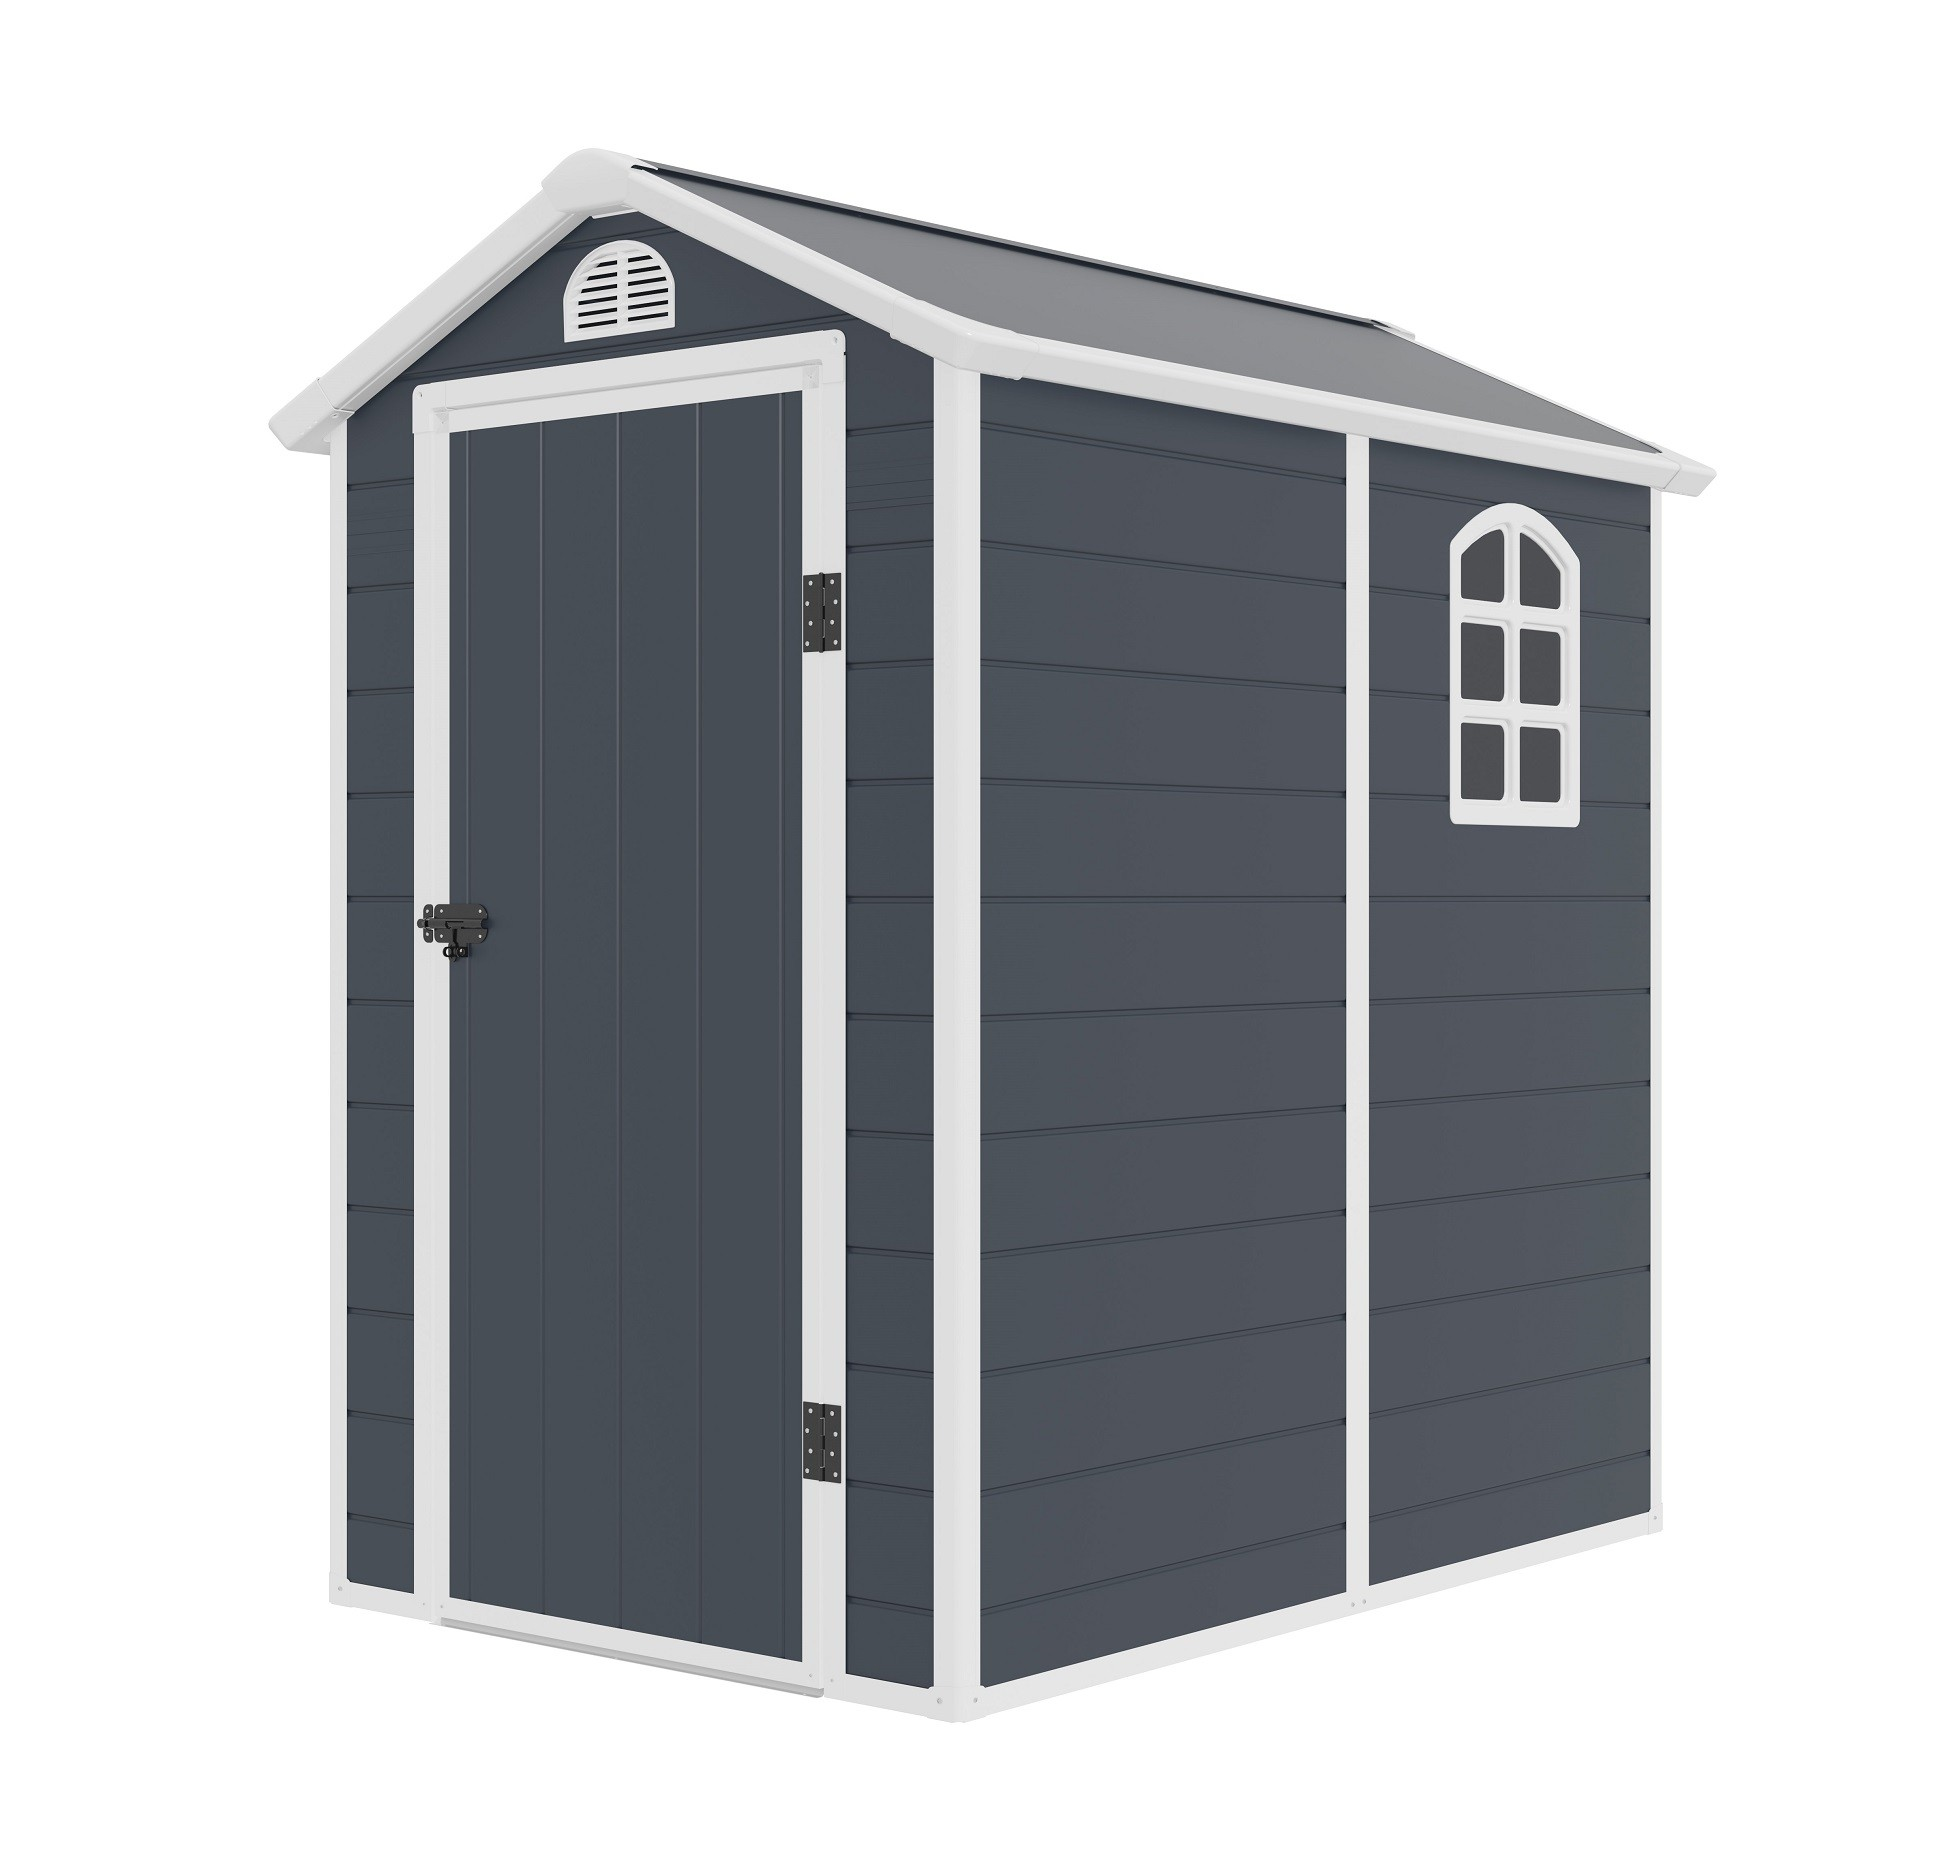 Jasmine 4ft x 6ft Plastic Apex Shed - Dark Grey with Foundation Kit (included)